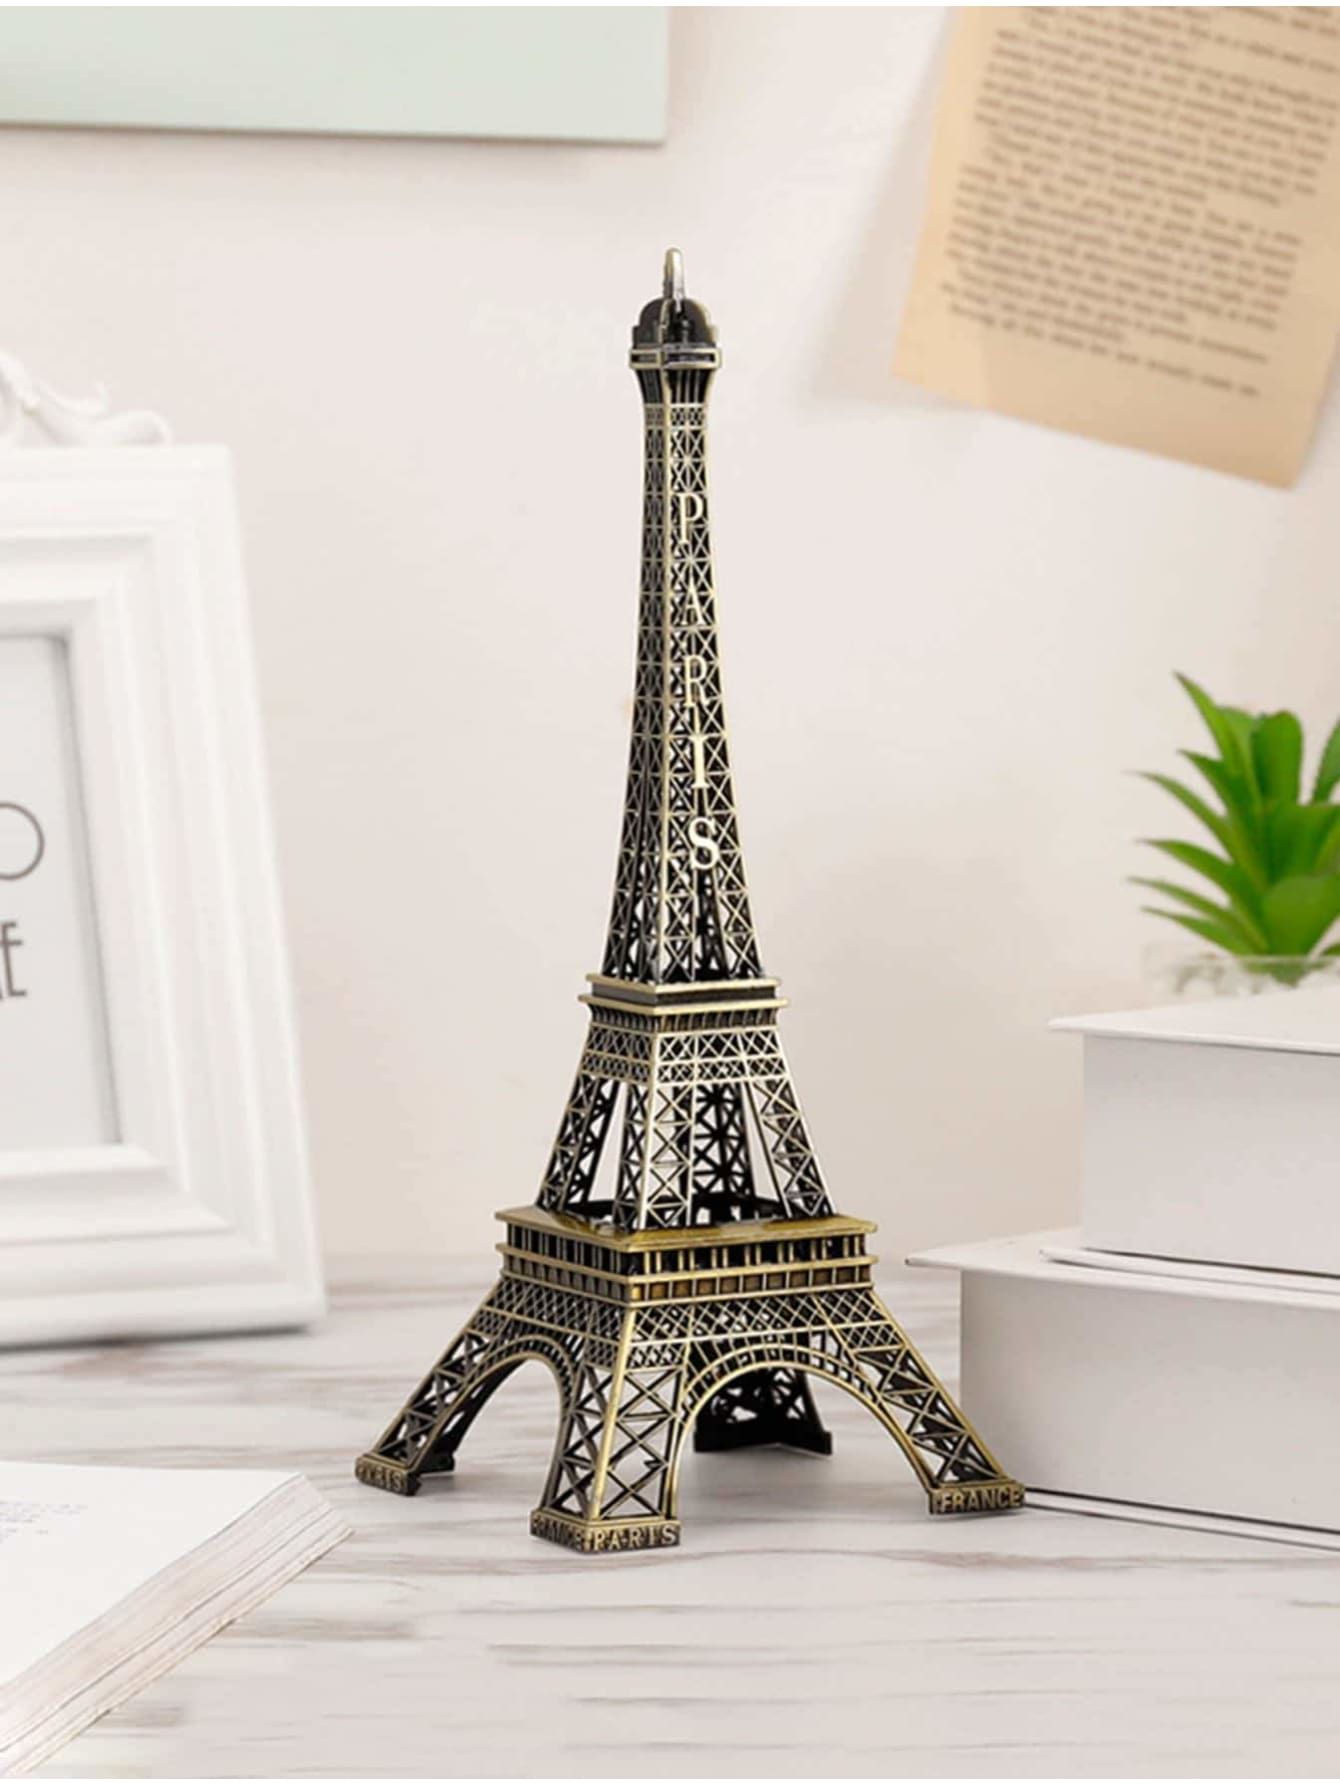 Eiffel Tower Decoration - Displays